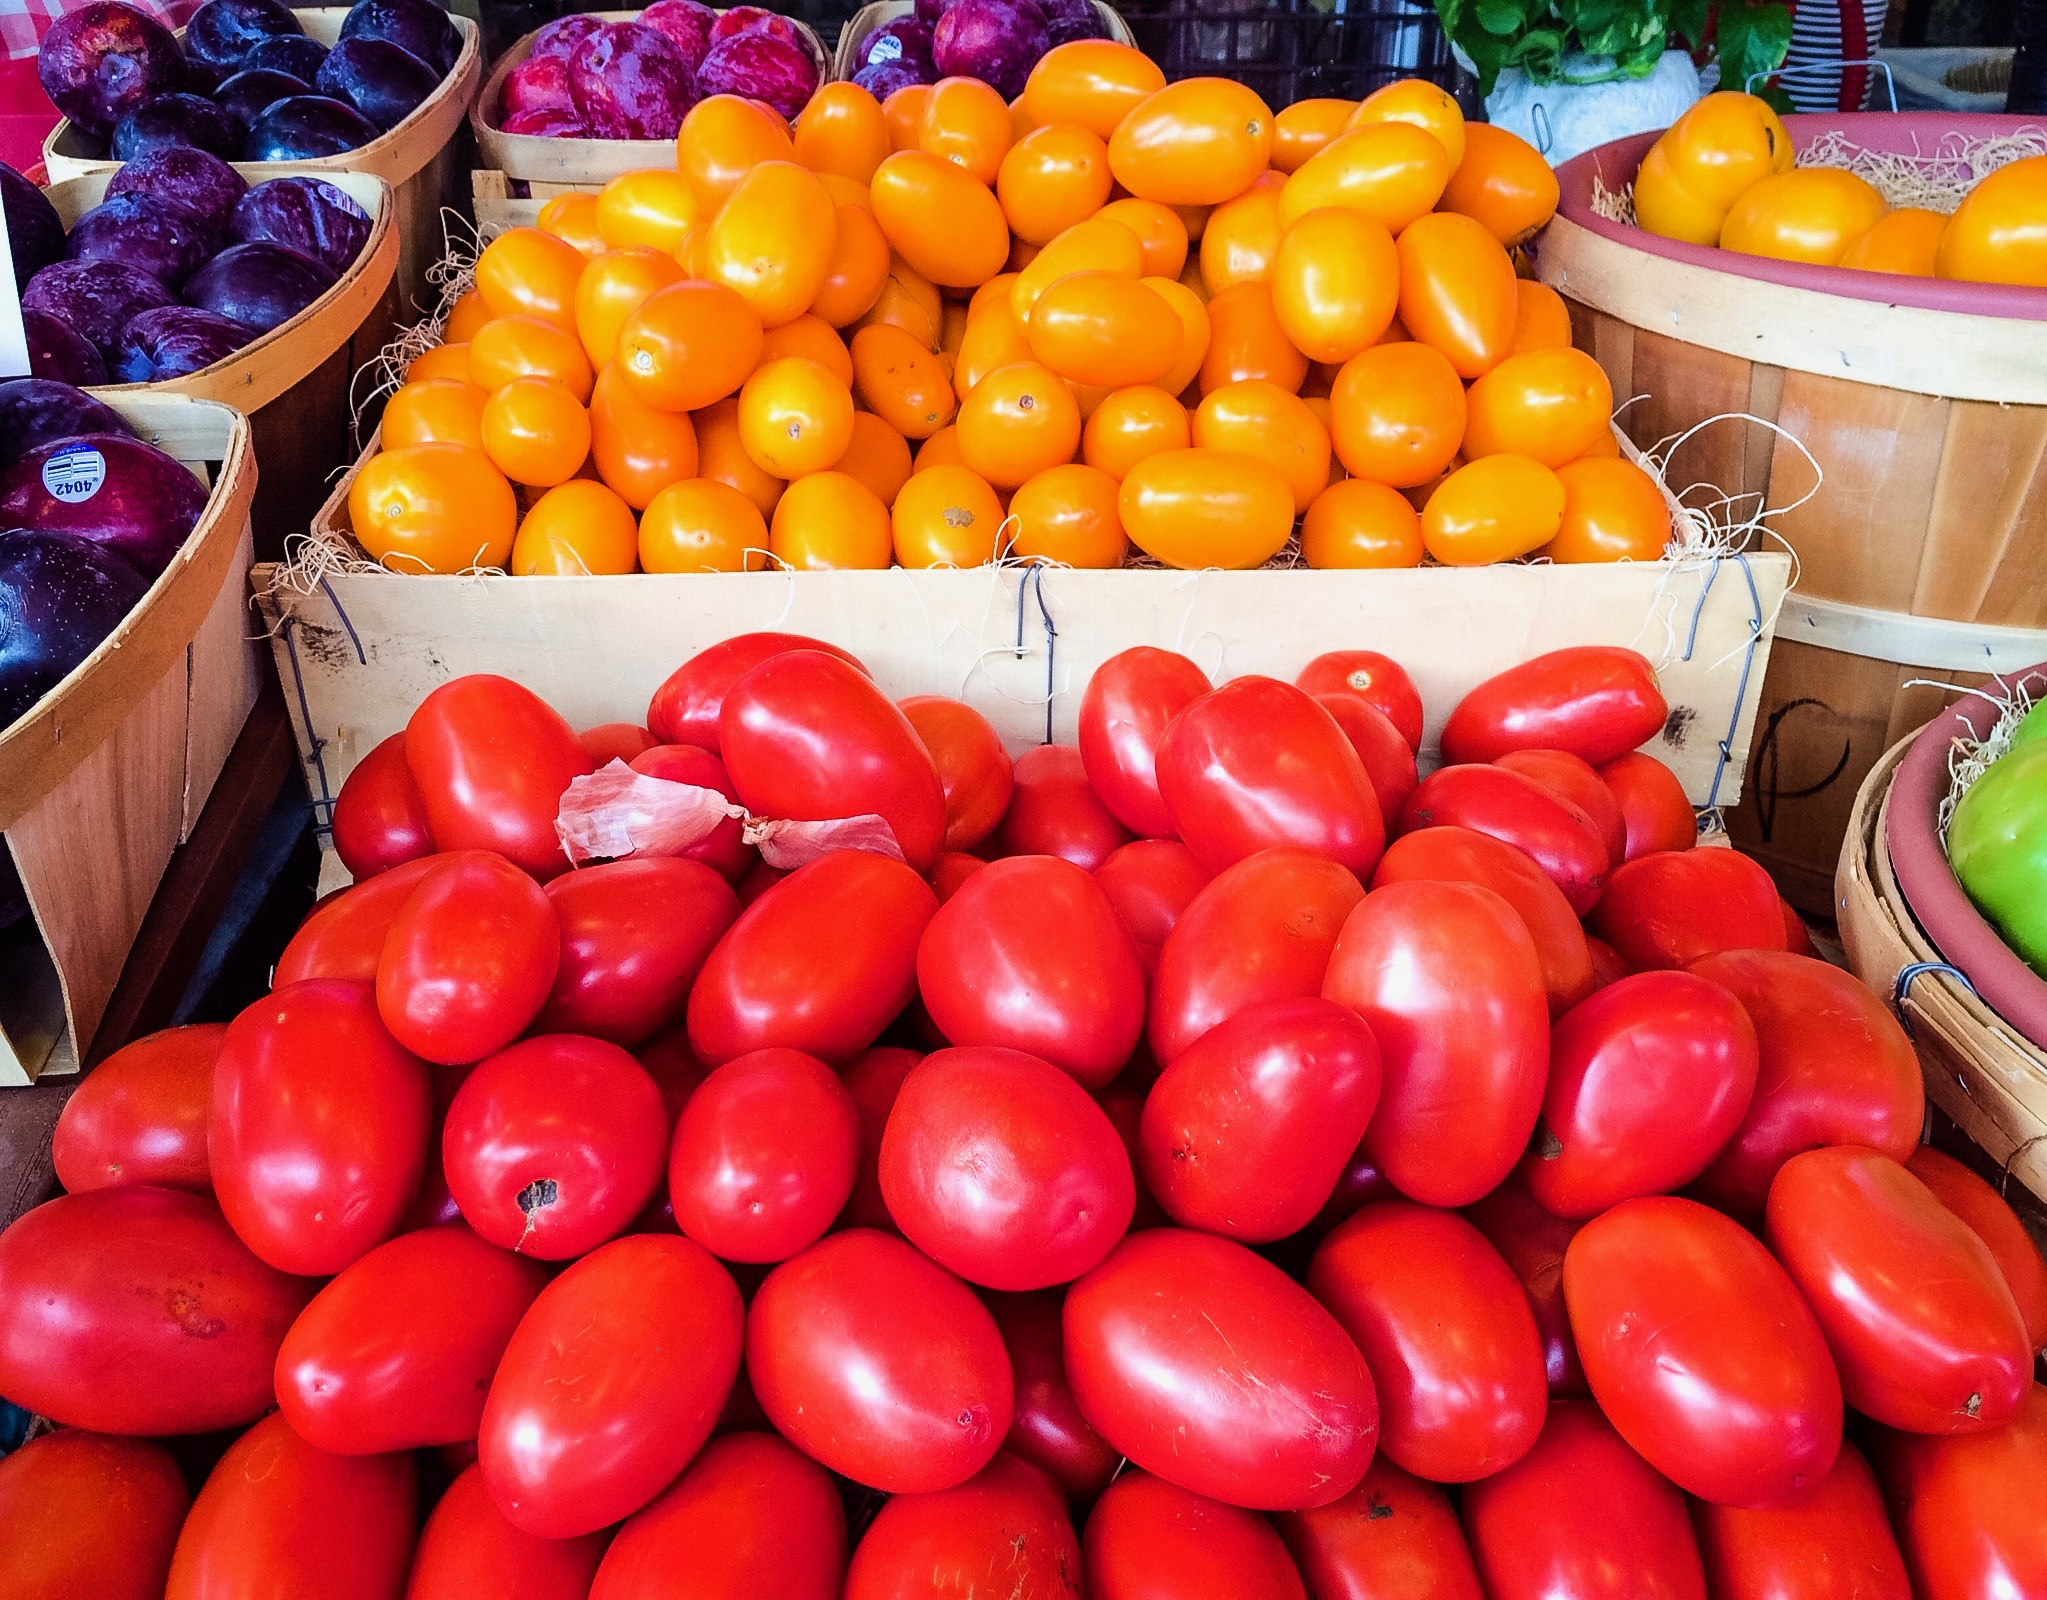 Orange and Yellow Plum Tomatoes in wooden boxes